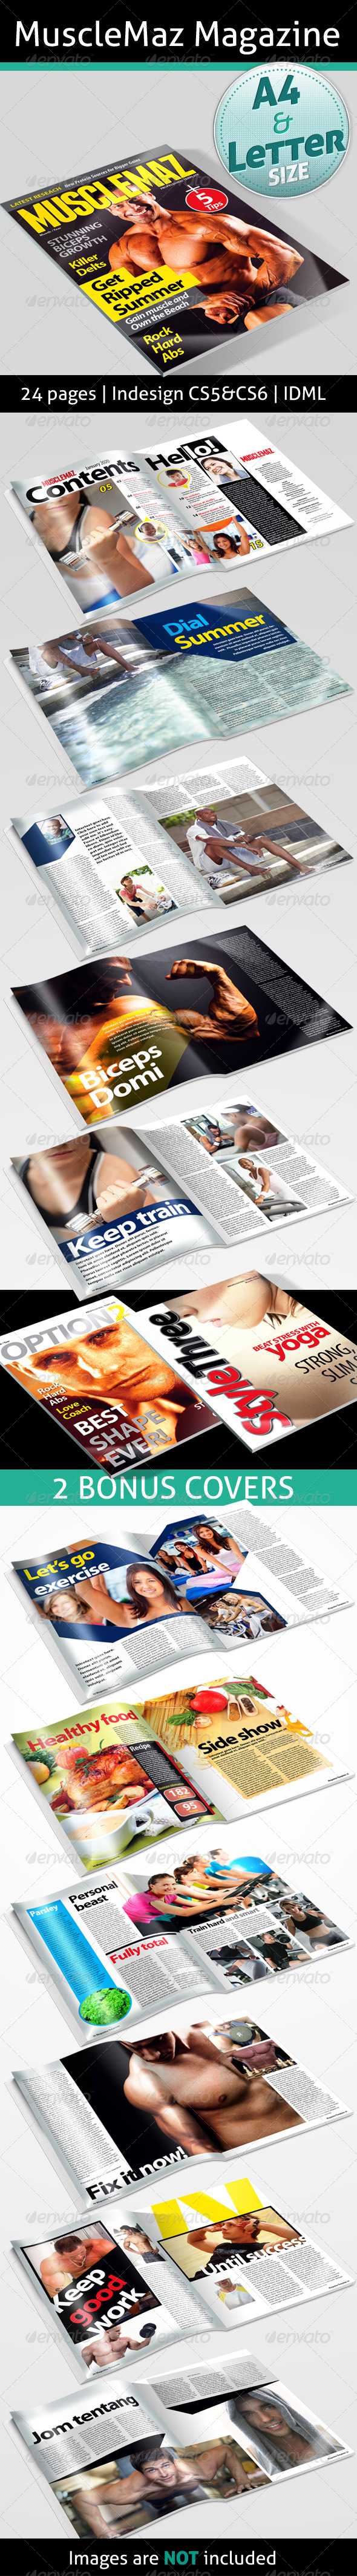 GraphicRiver MuscleMaz Magazine 4636124